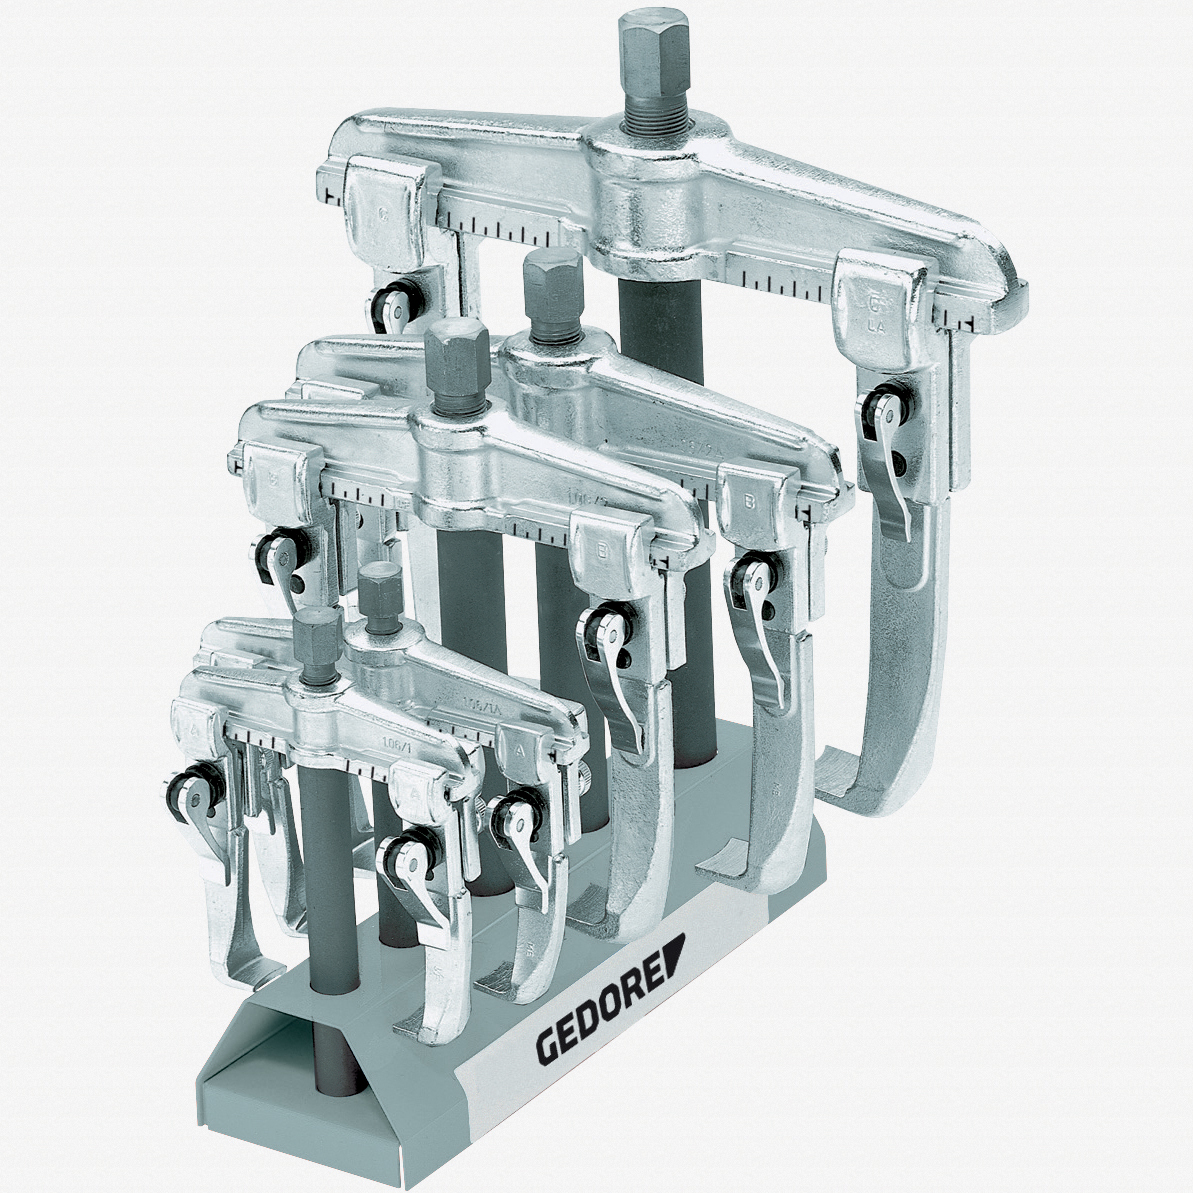 Gedore 1.06/ST-E Puller set with display stand 1.06/1-E-1.06/3-E - KC Tool